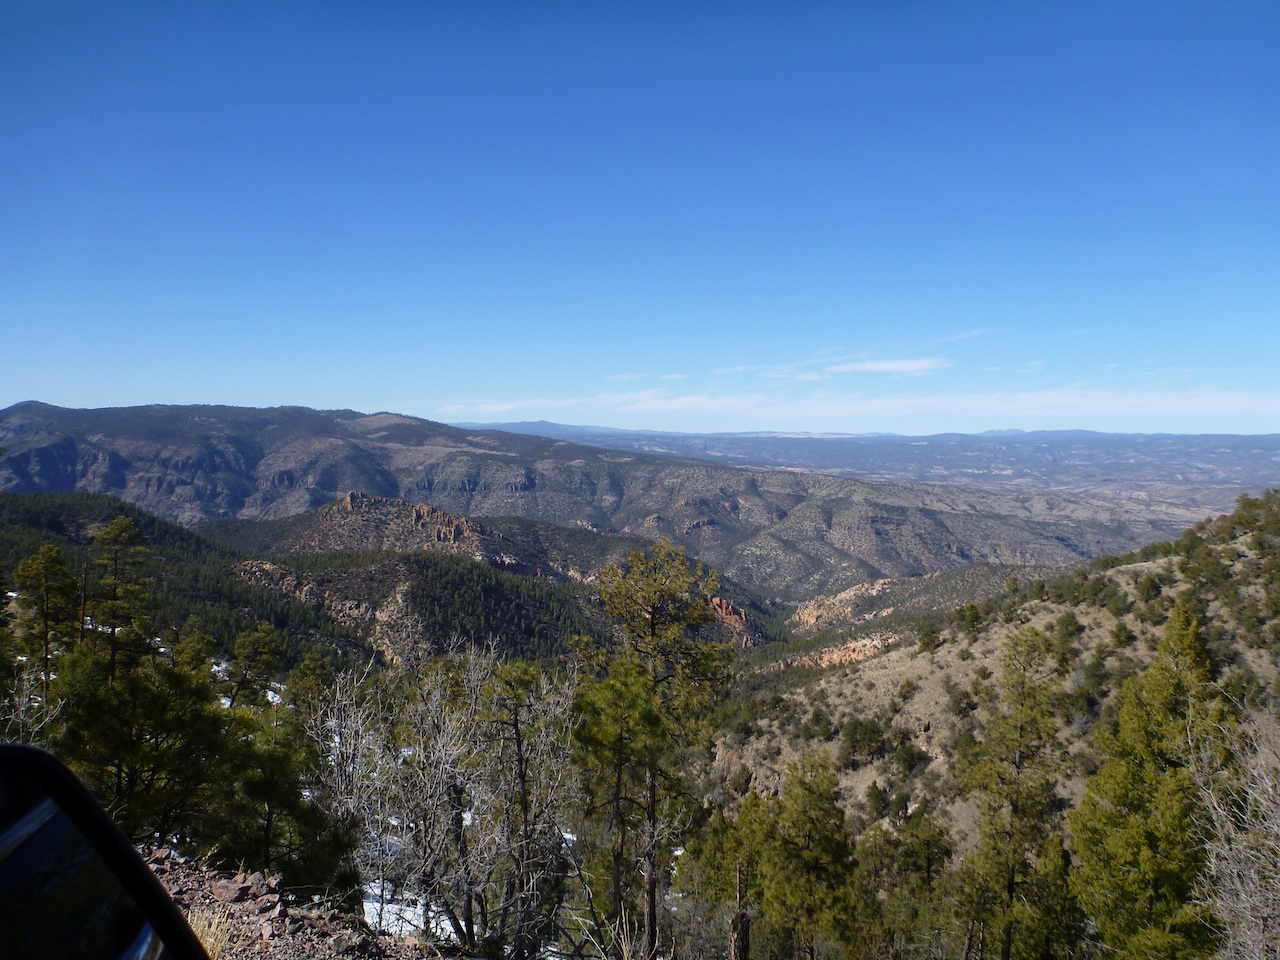 The View From The Top Of One Of The Mountains In The Gila National Forest